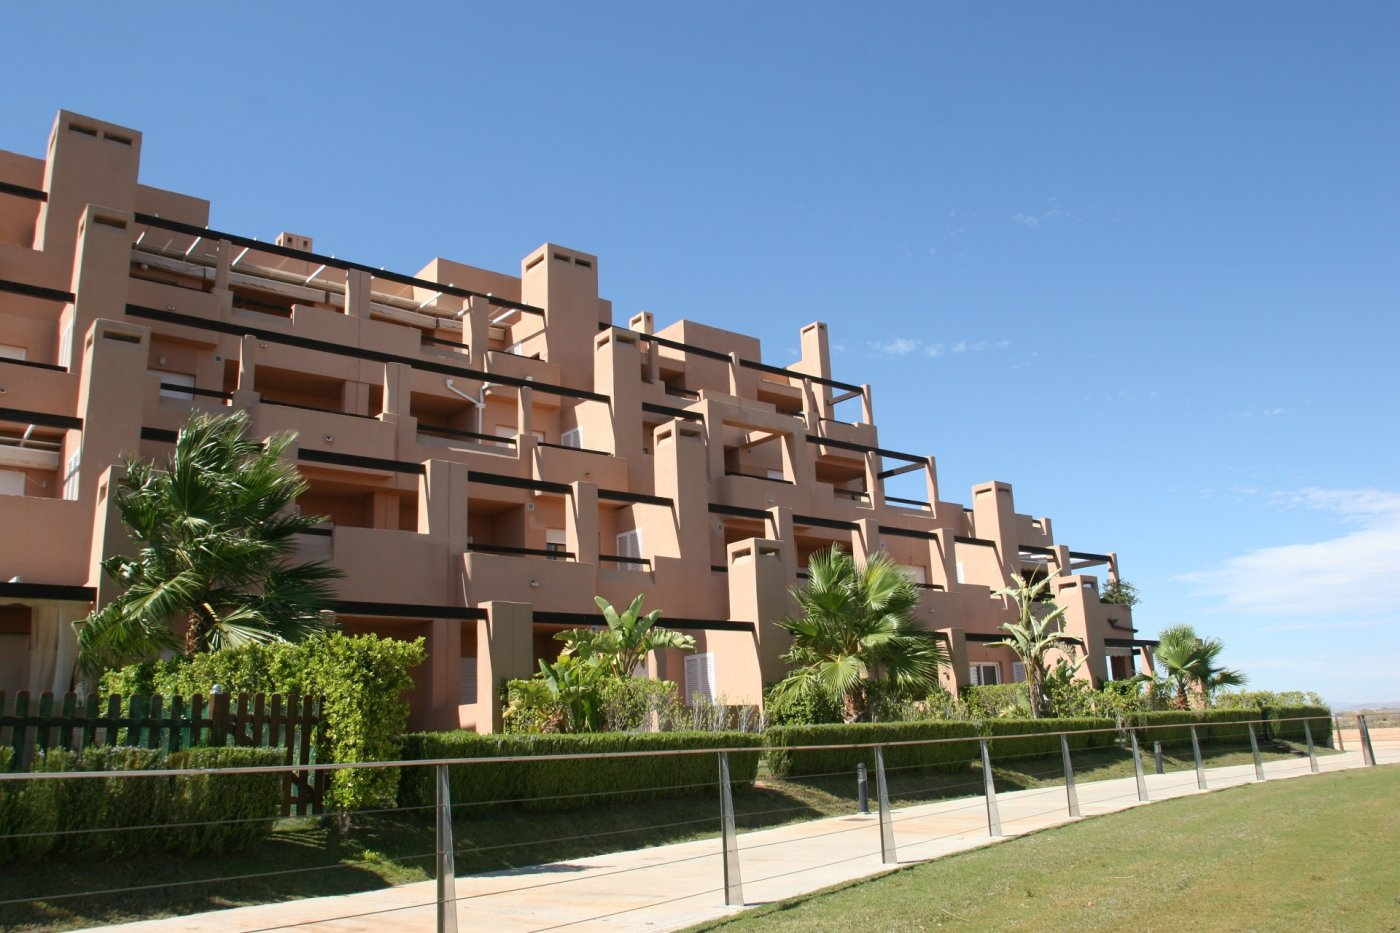 Gallery Image 35 of Bright and South-West facing 2 bedroom apartment in La Isla, with prime views and afternoon sun